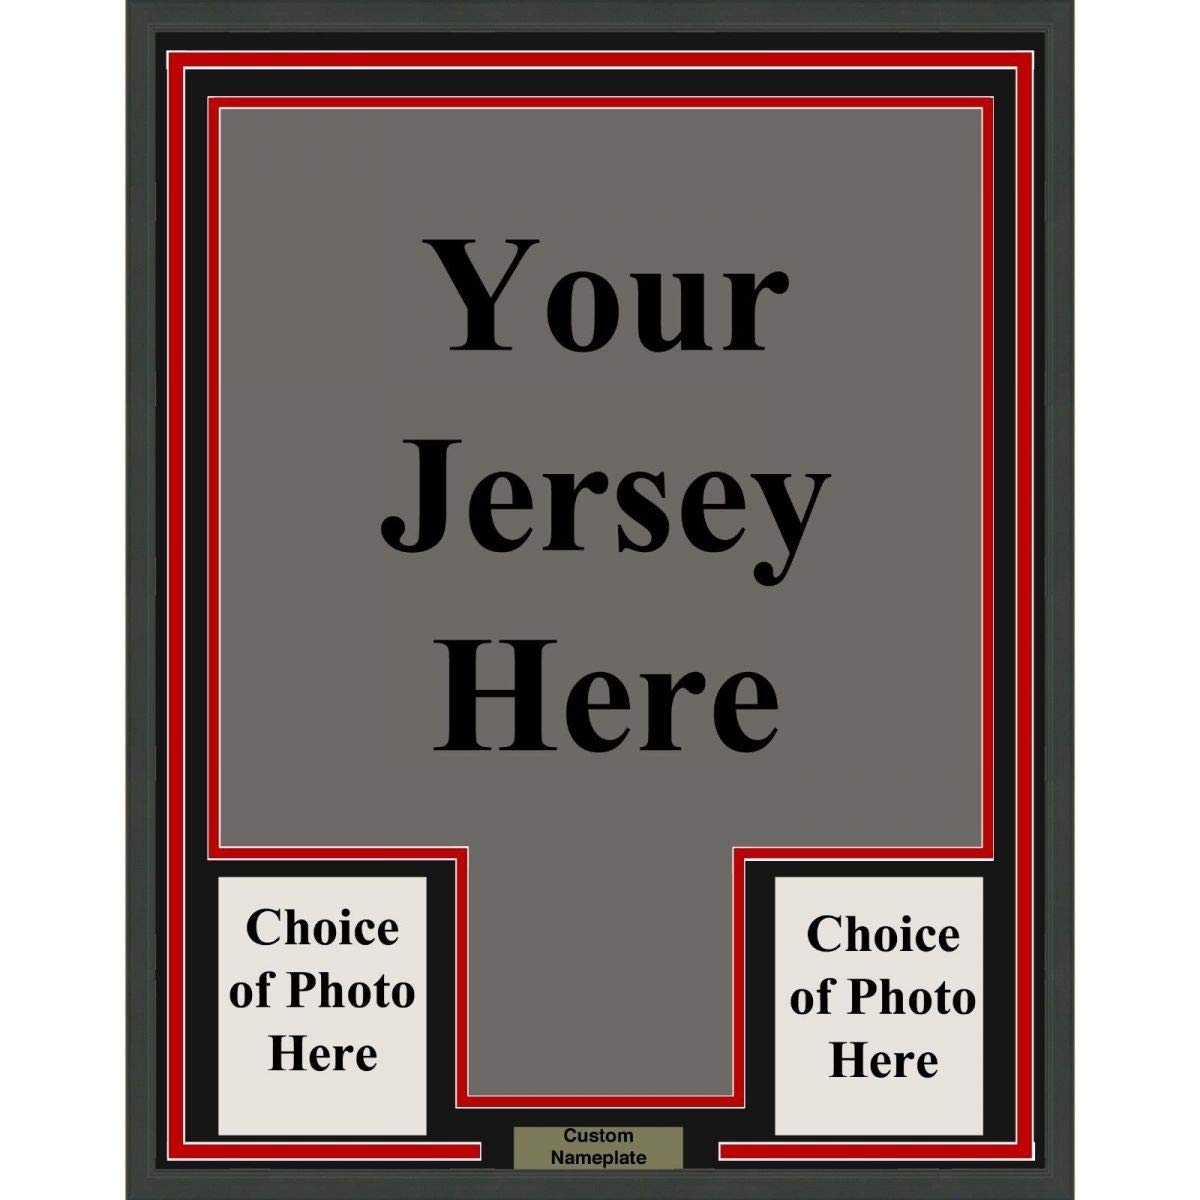 Framed Custom Your Jersey 33x42 Professionally Framed & Matted Deluxe Framing with Photos Jersey Free Shipping